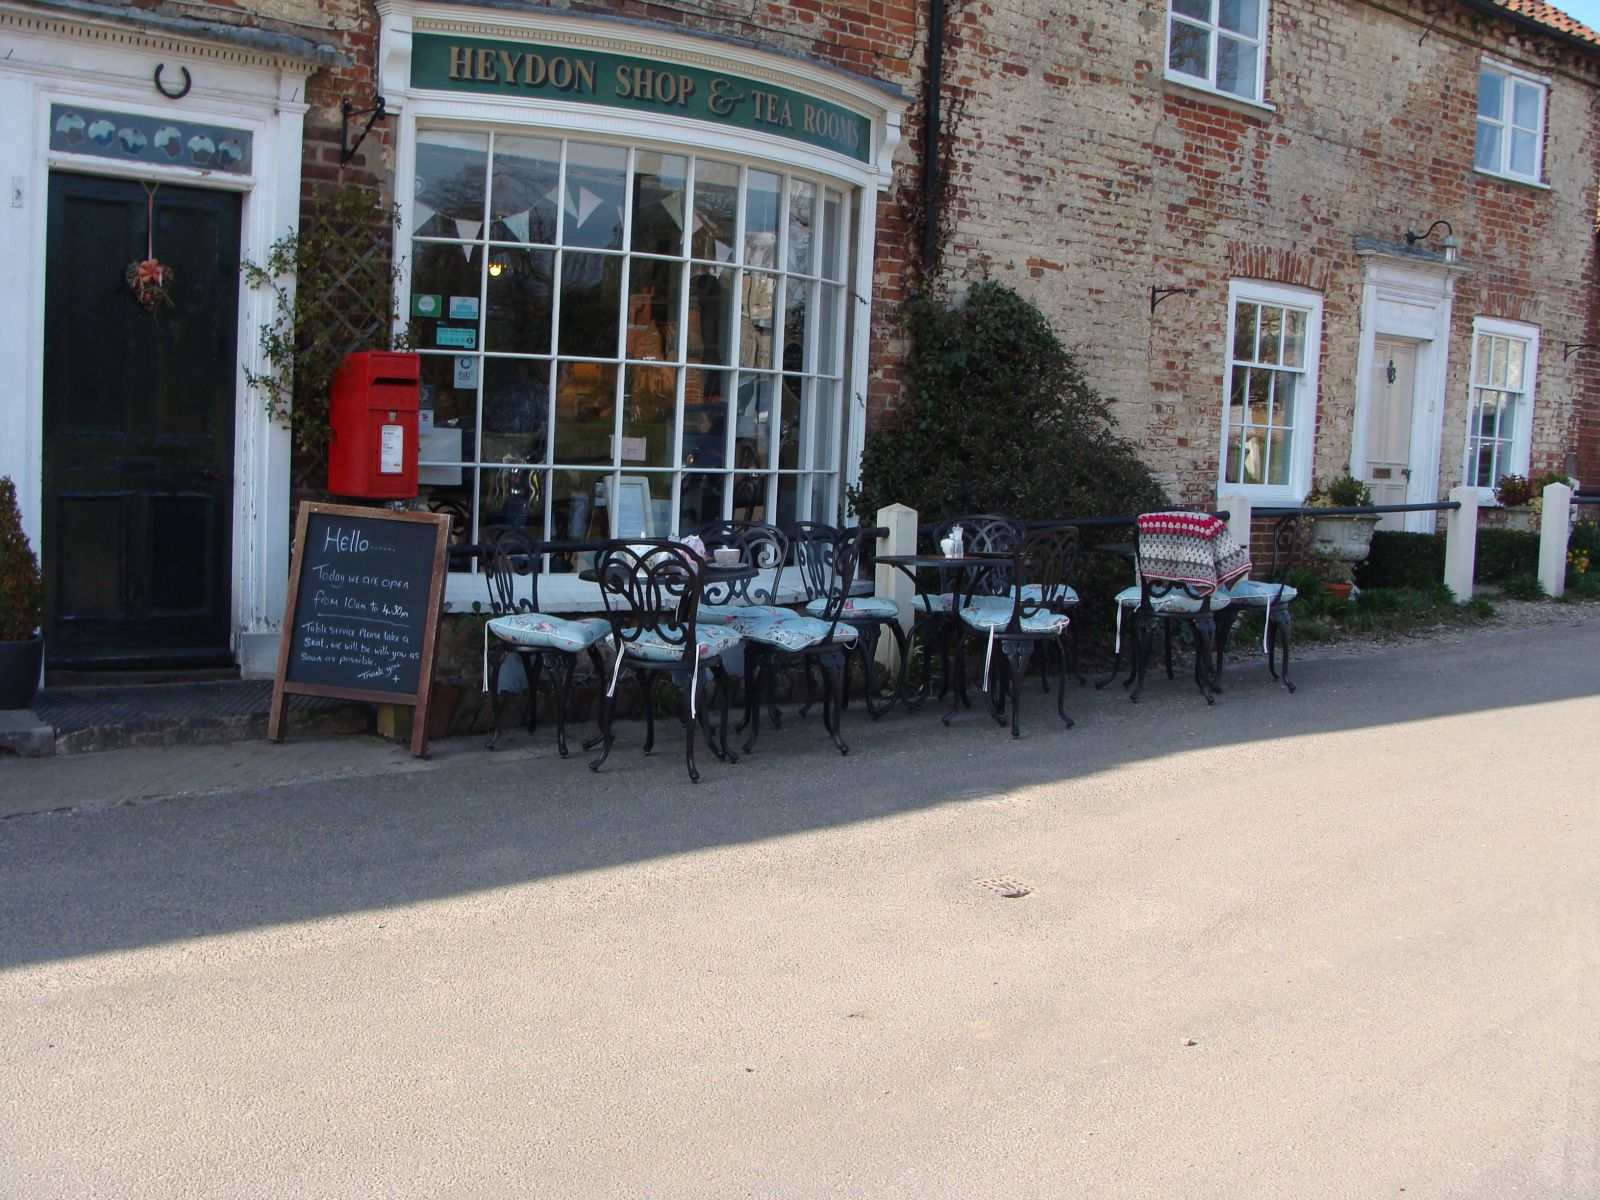 Outside View of Local Tea Shop at Heydon